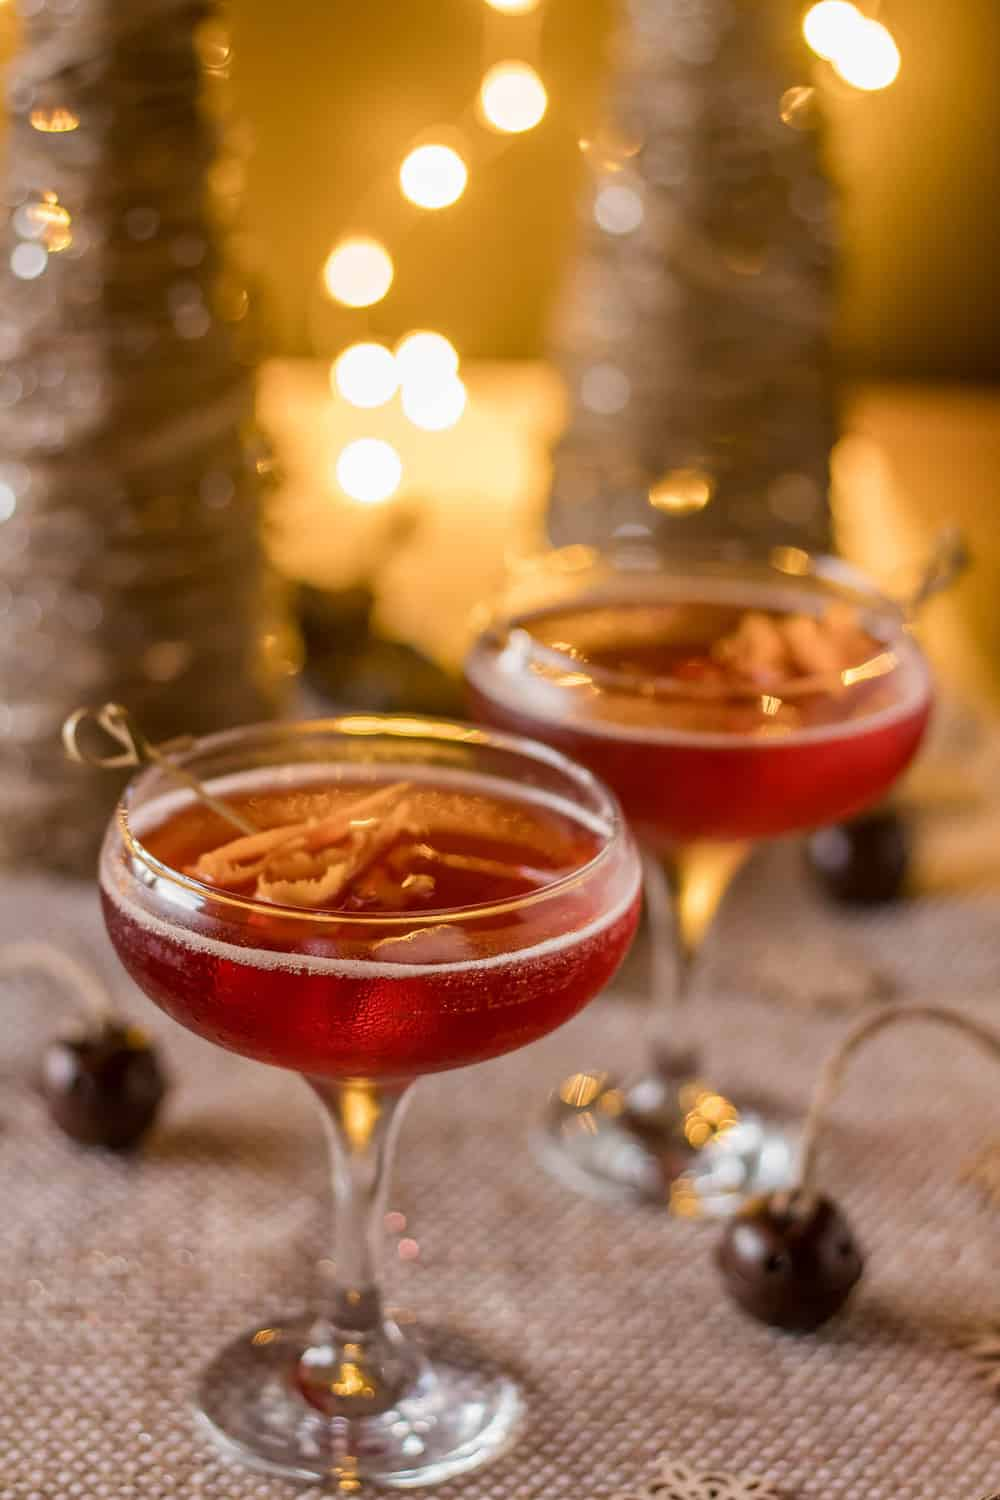 2 Mexican Manhattans on burlap with Christmas ornaments and twinkly lights.